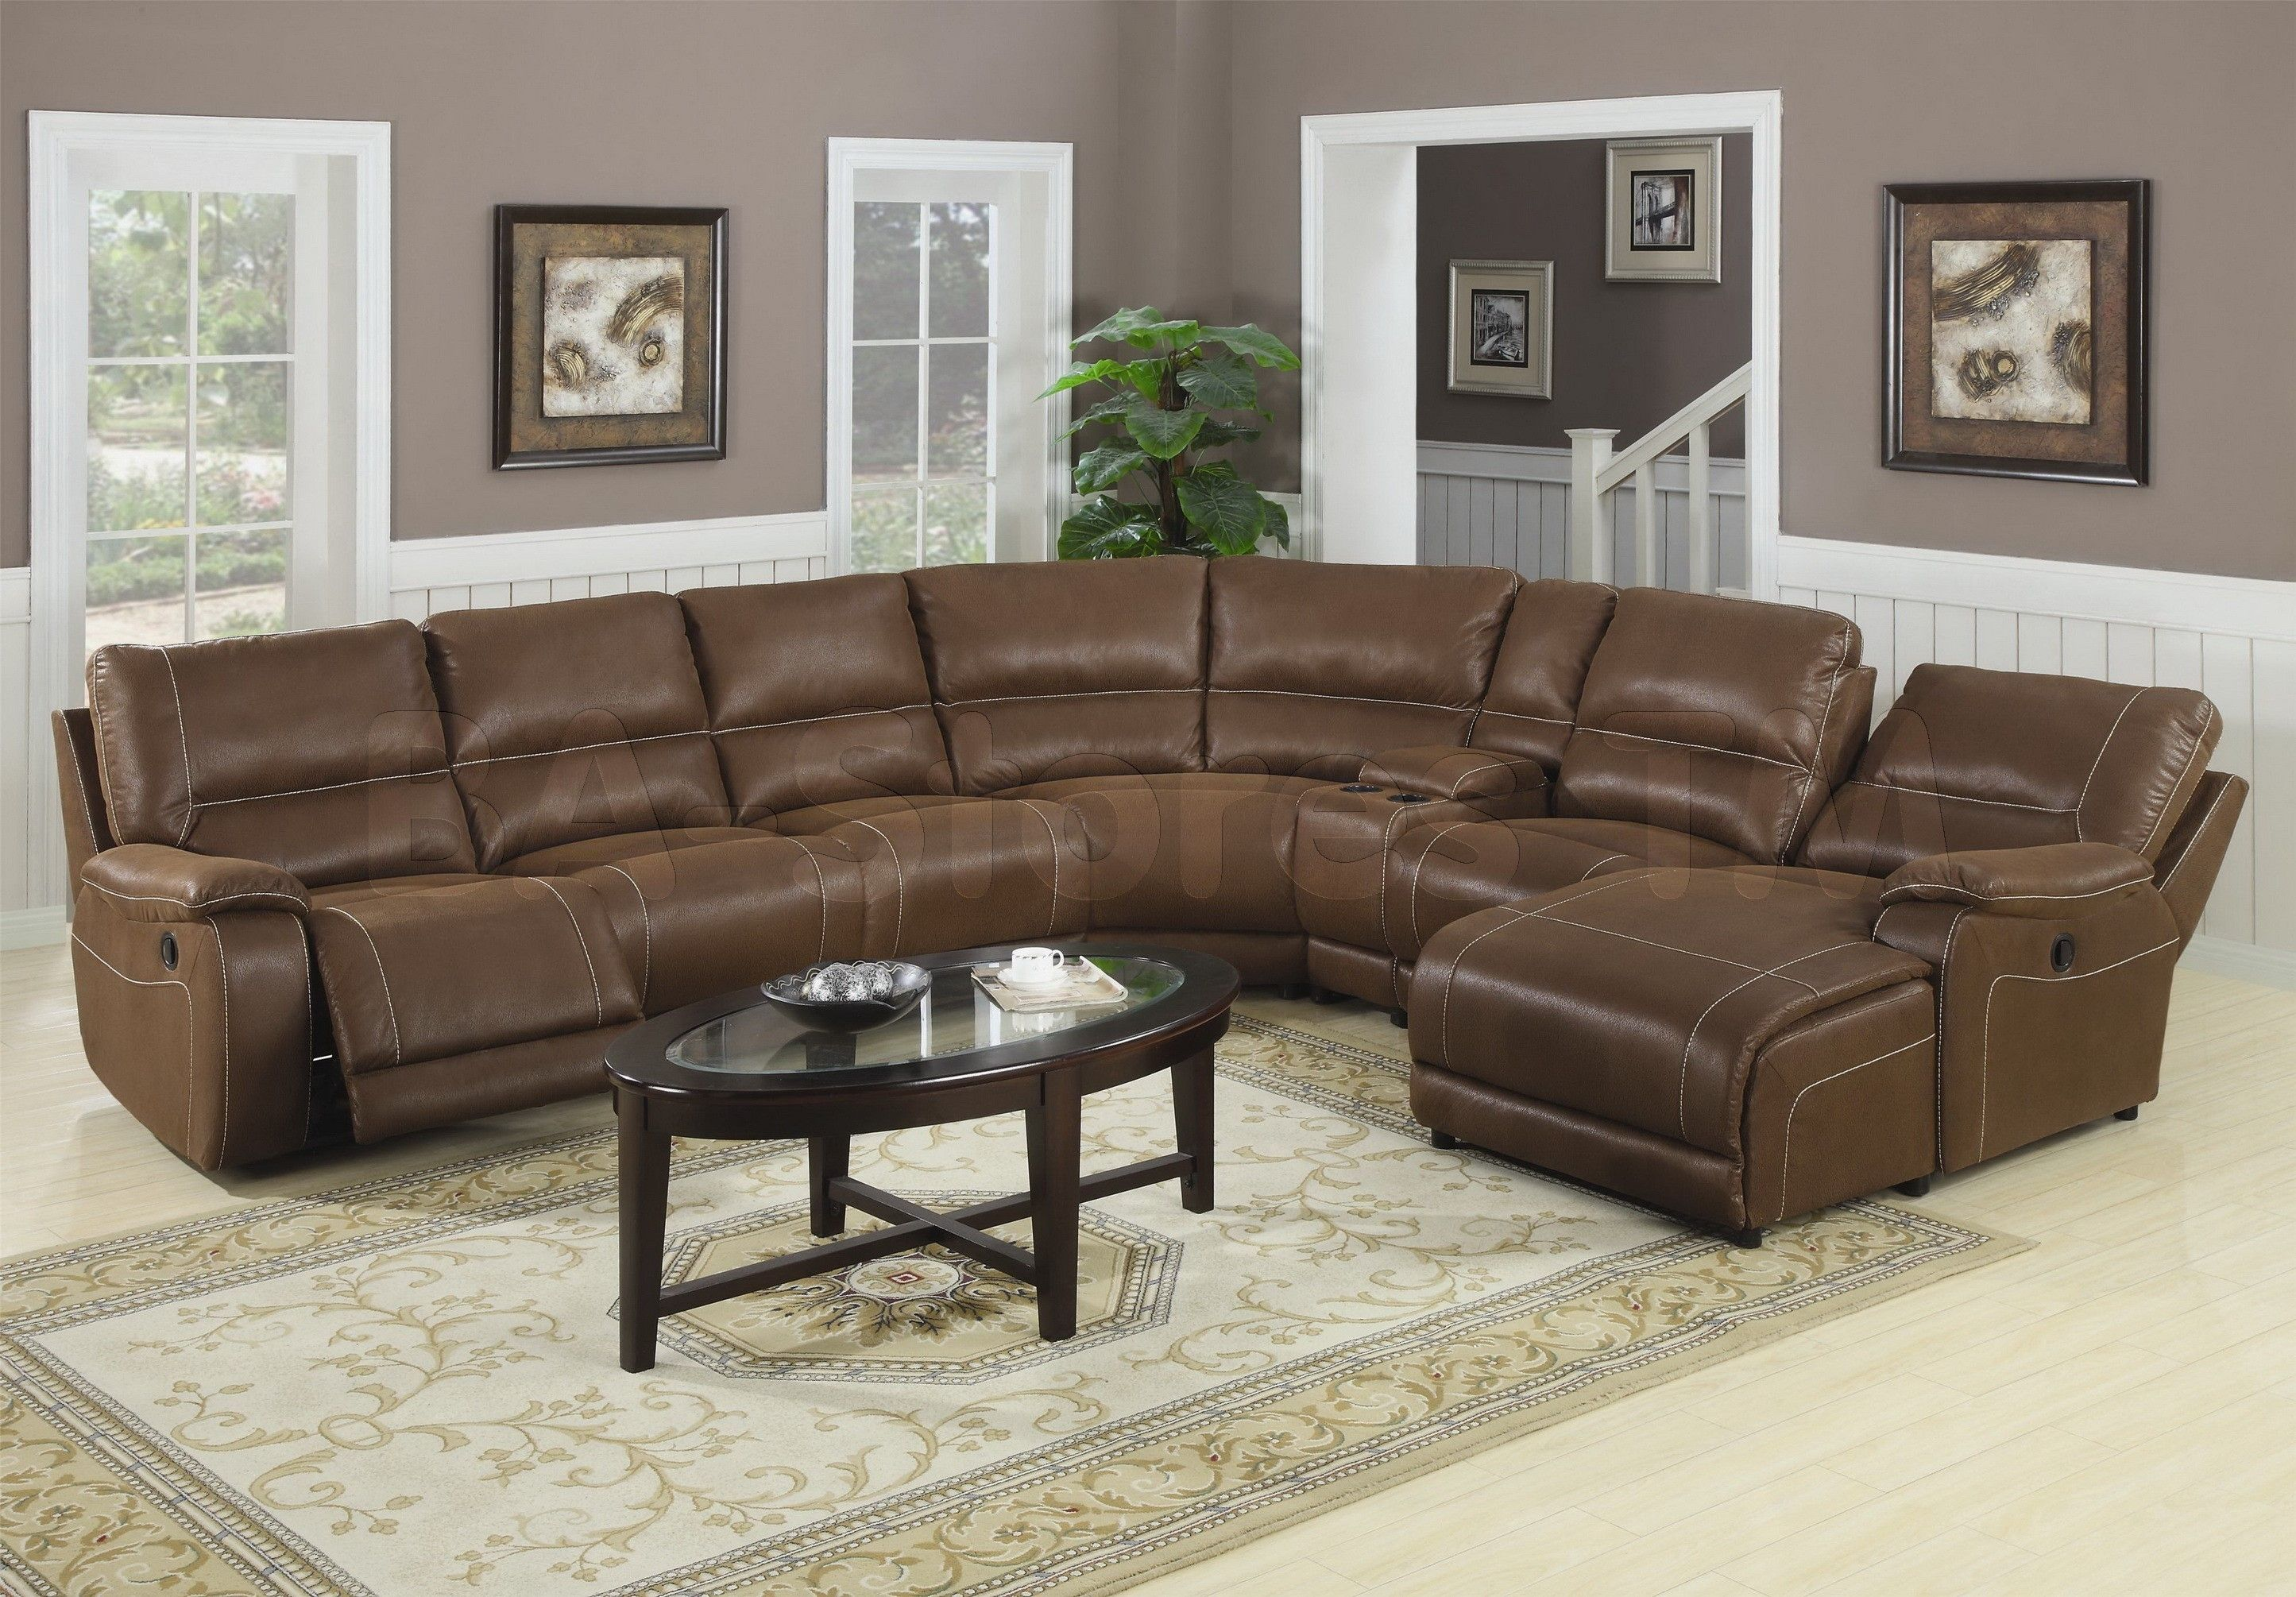 Leather sofa2 Furniture in Turkey Pinterest